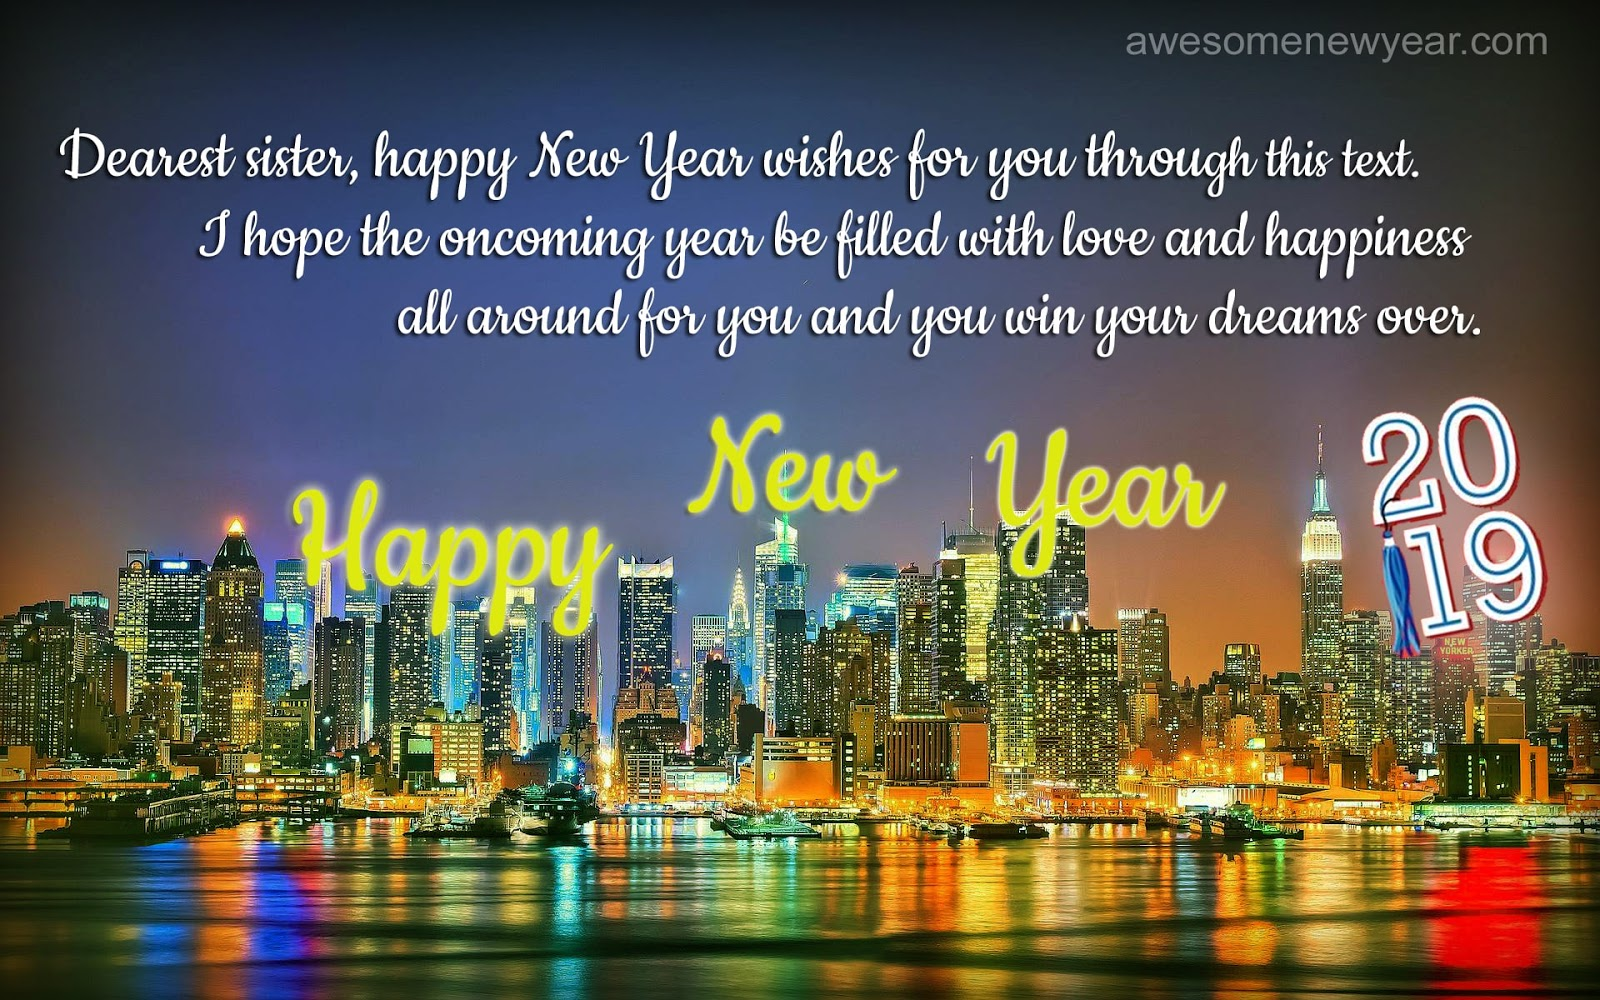 sister happy new year 2019 quotes